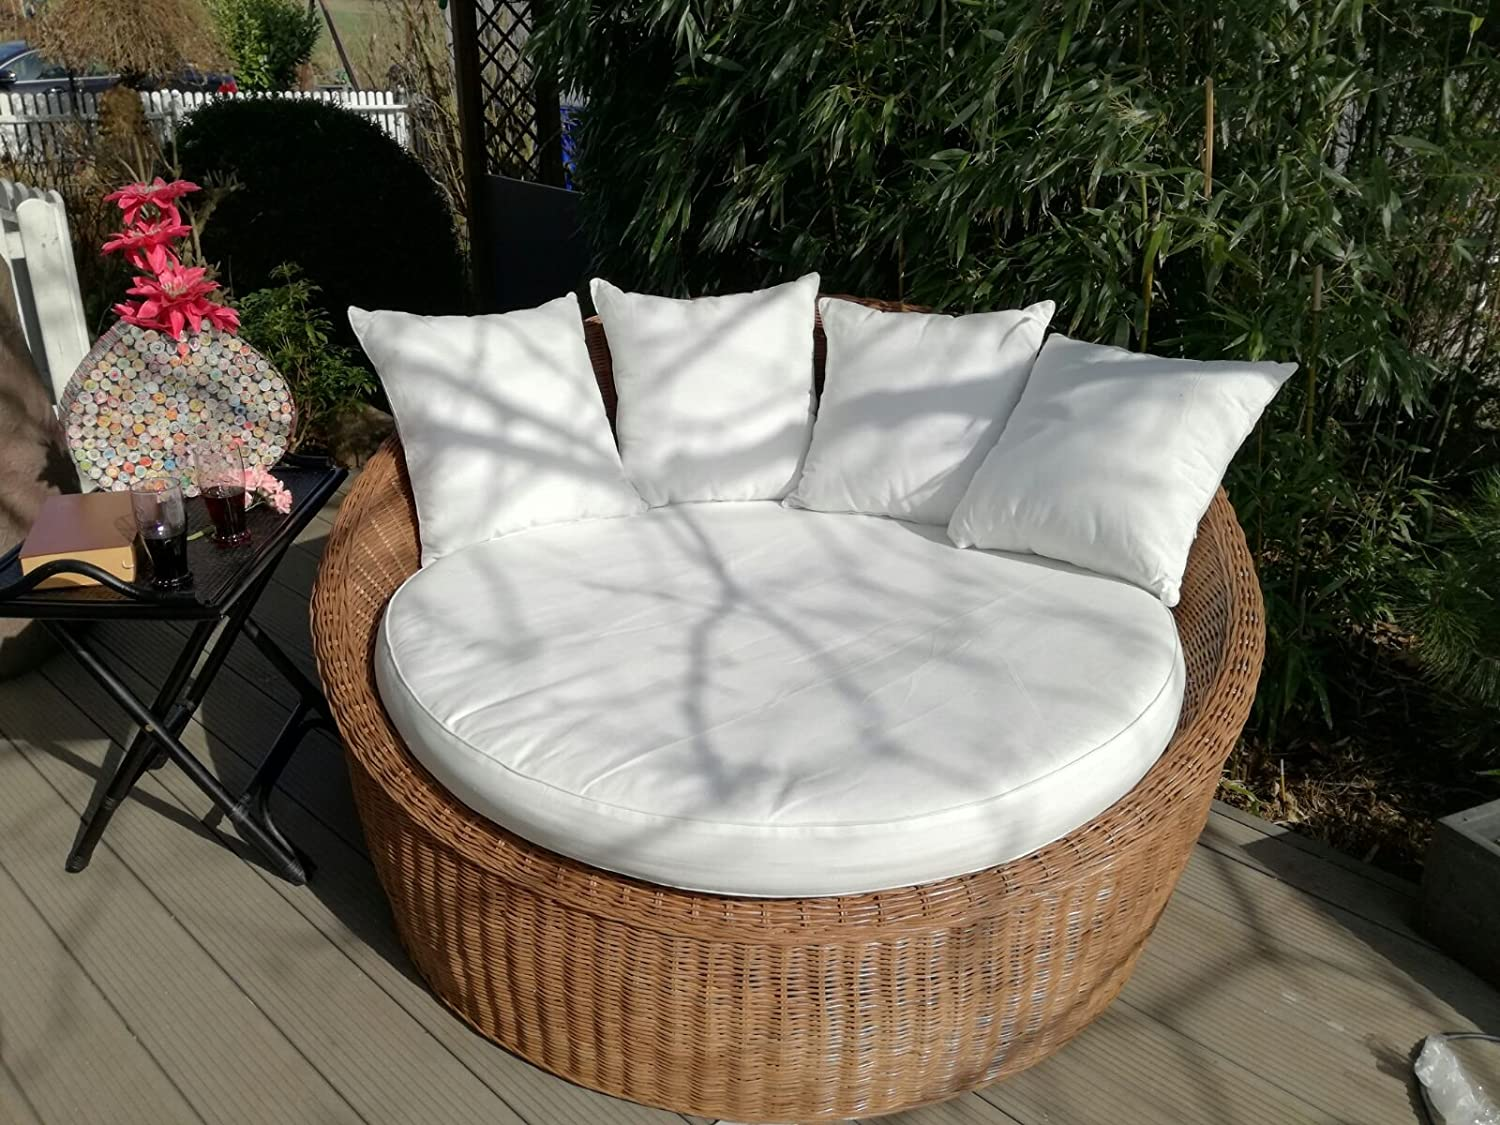 Xxl sessel günstig  Honeymoon Sessel aus 100% Natur Rattan, Loungesessel, XXL-Sessel ...